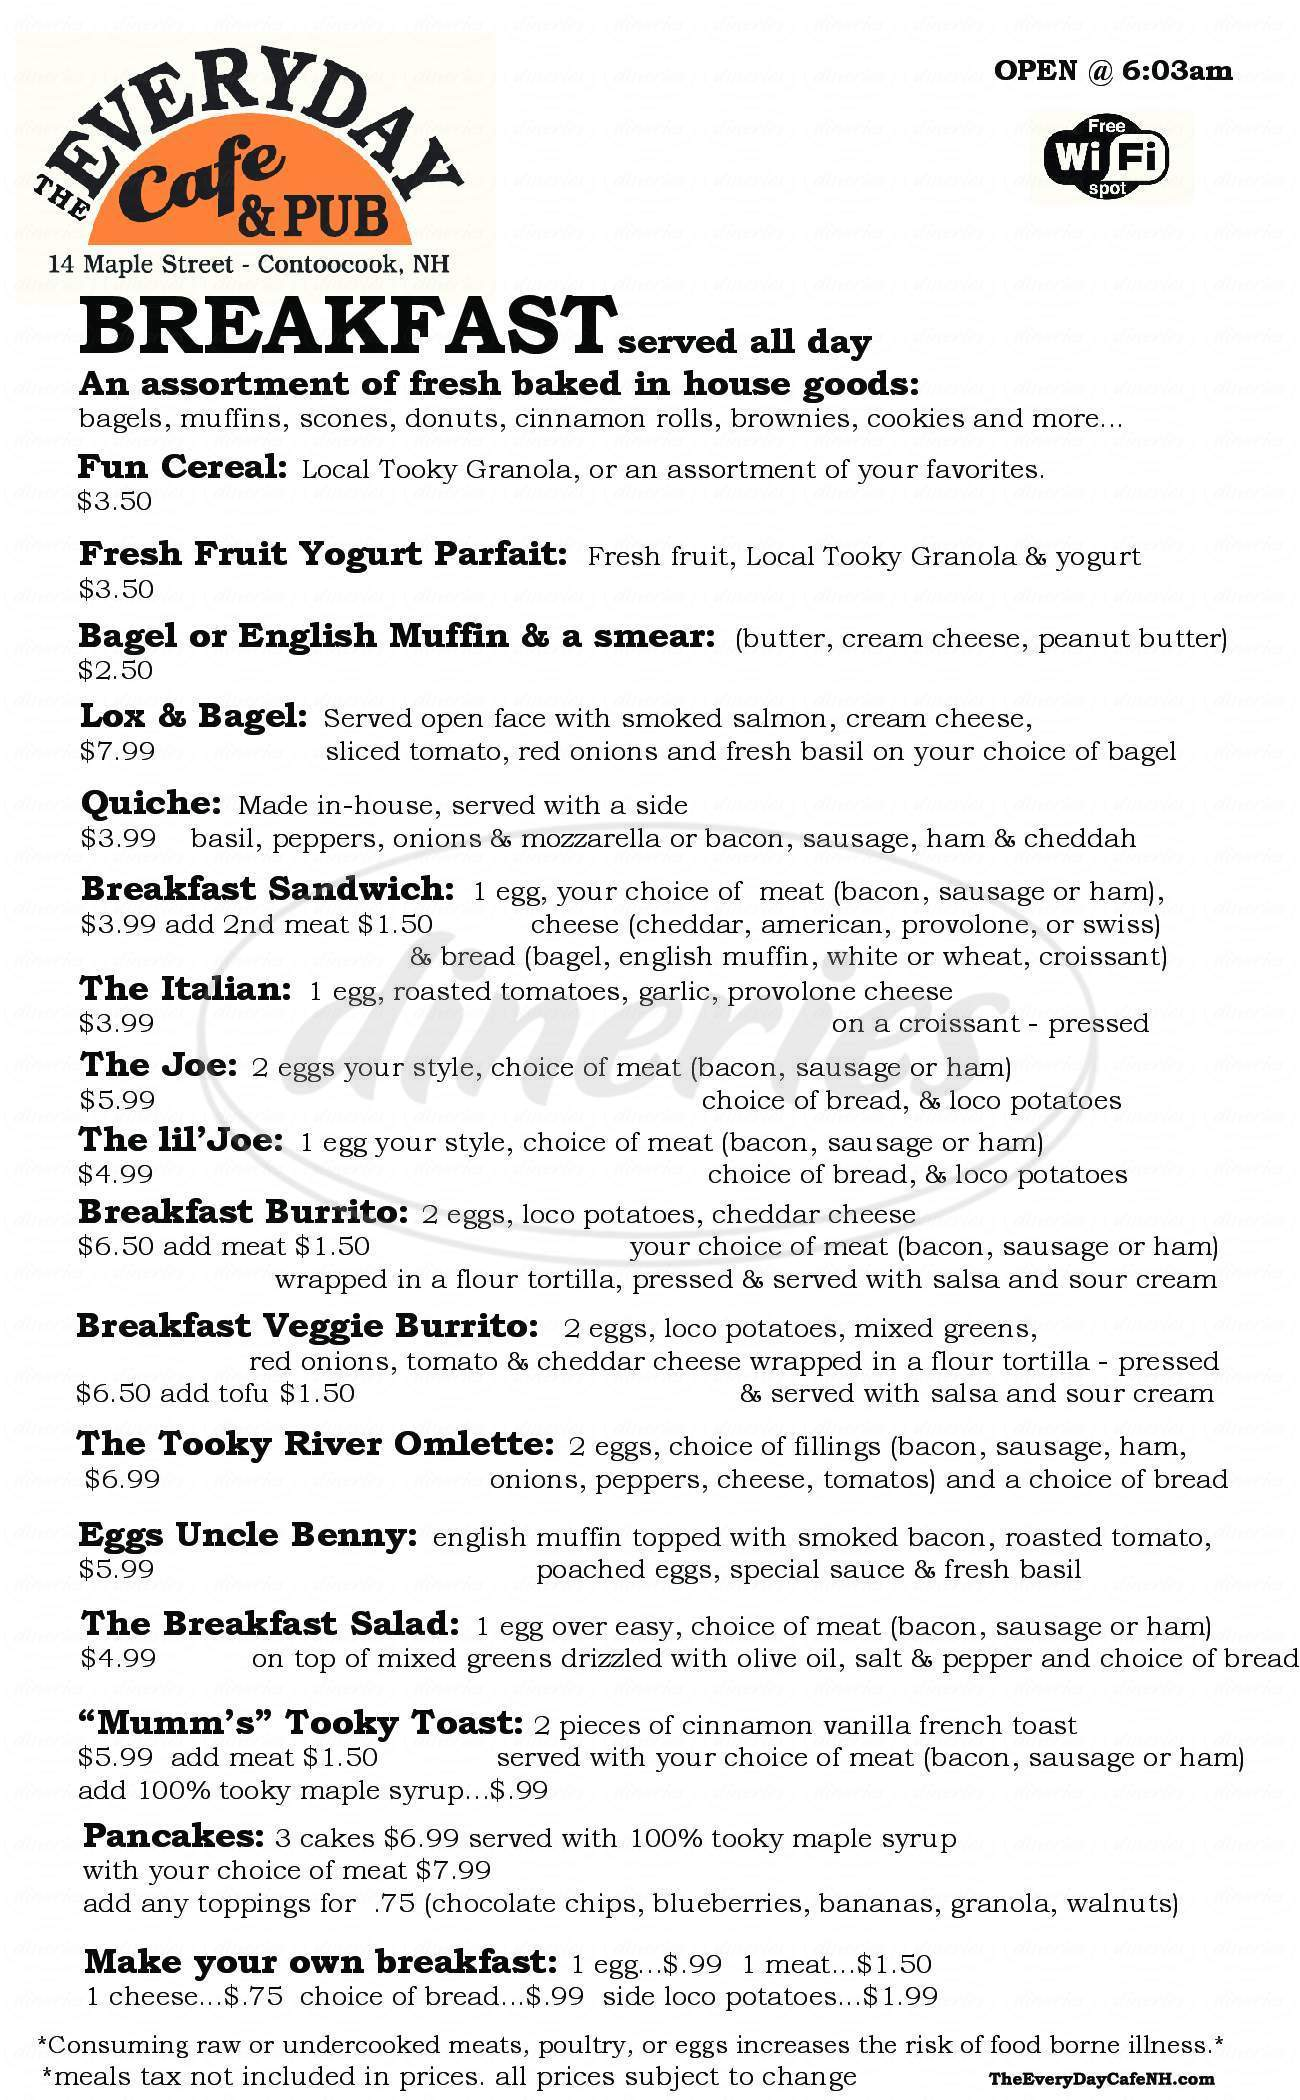 menu for The Everyday Cafe